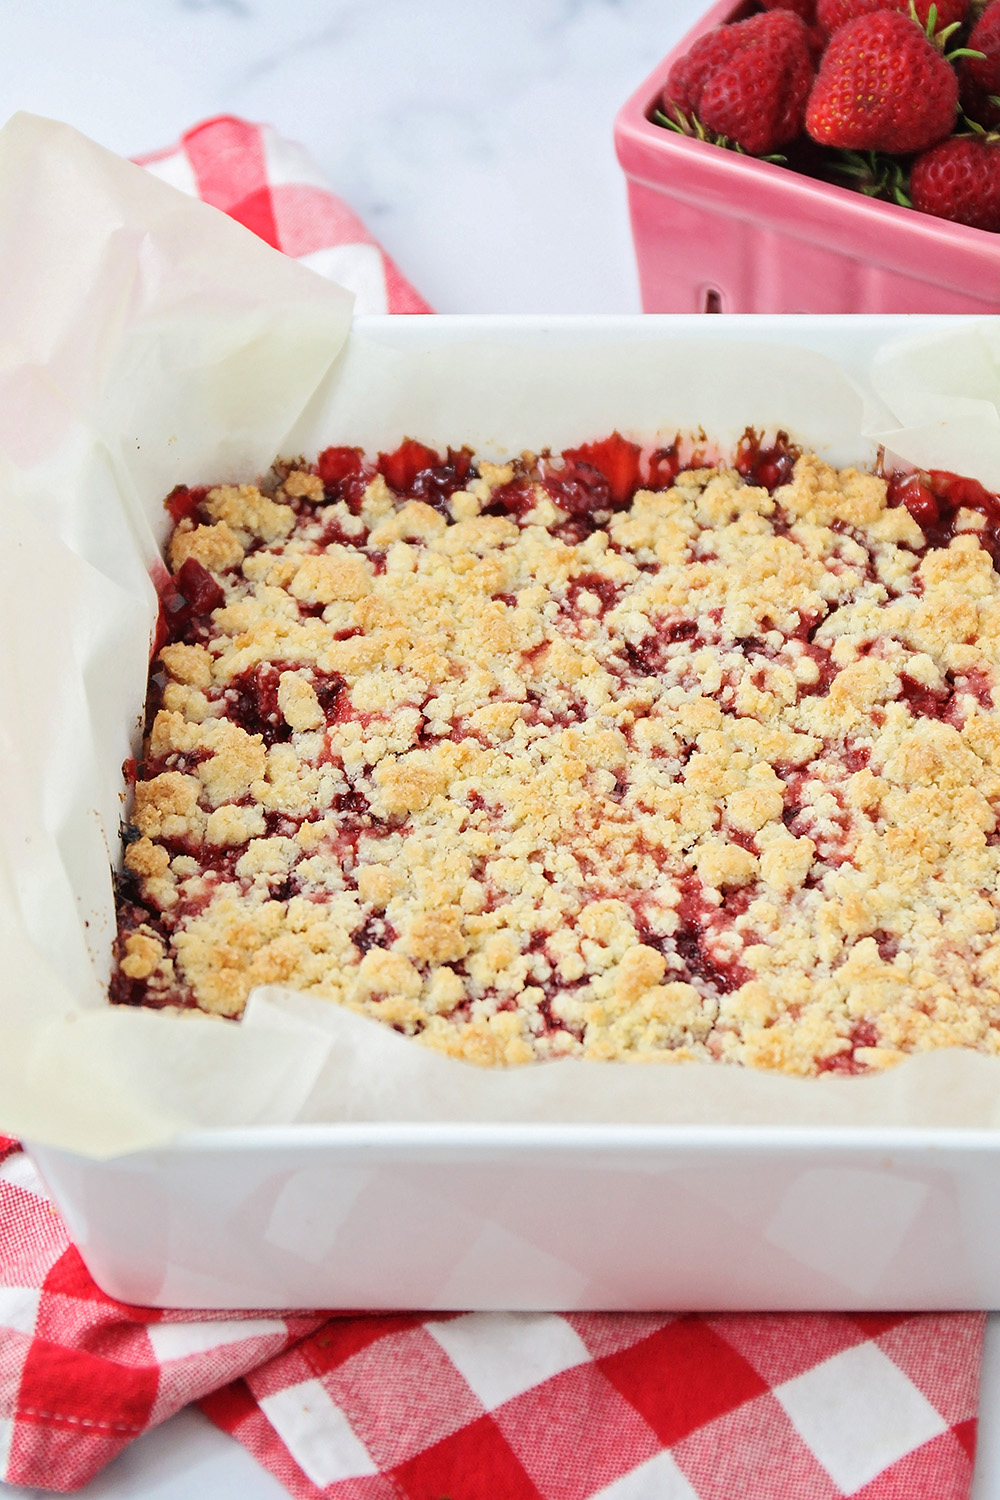 These delicious and easy to make strawberry crumb bars are the perfect summer dessert!